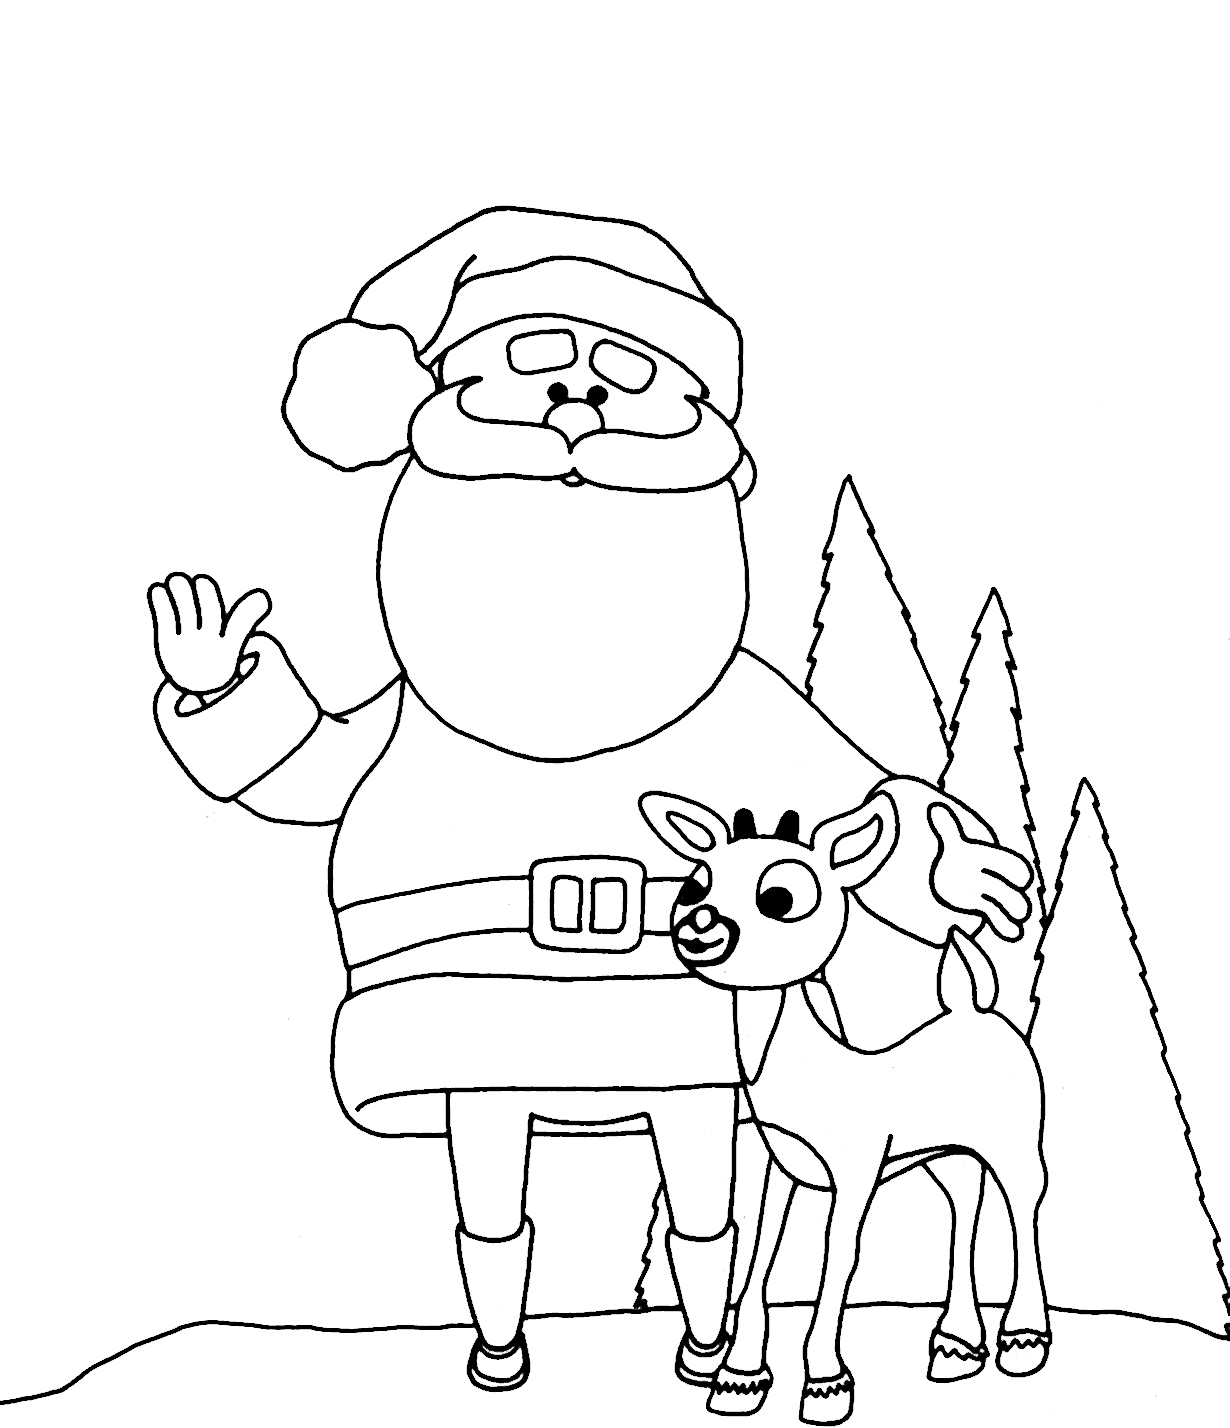 Yucca Flats, N.M.: Wenchkin\'s Coloring Pages - Rankin Bass Santa Tribute